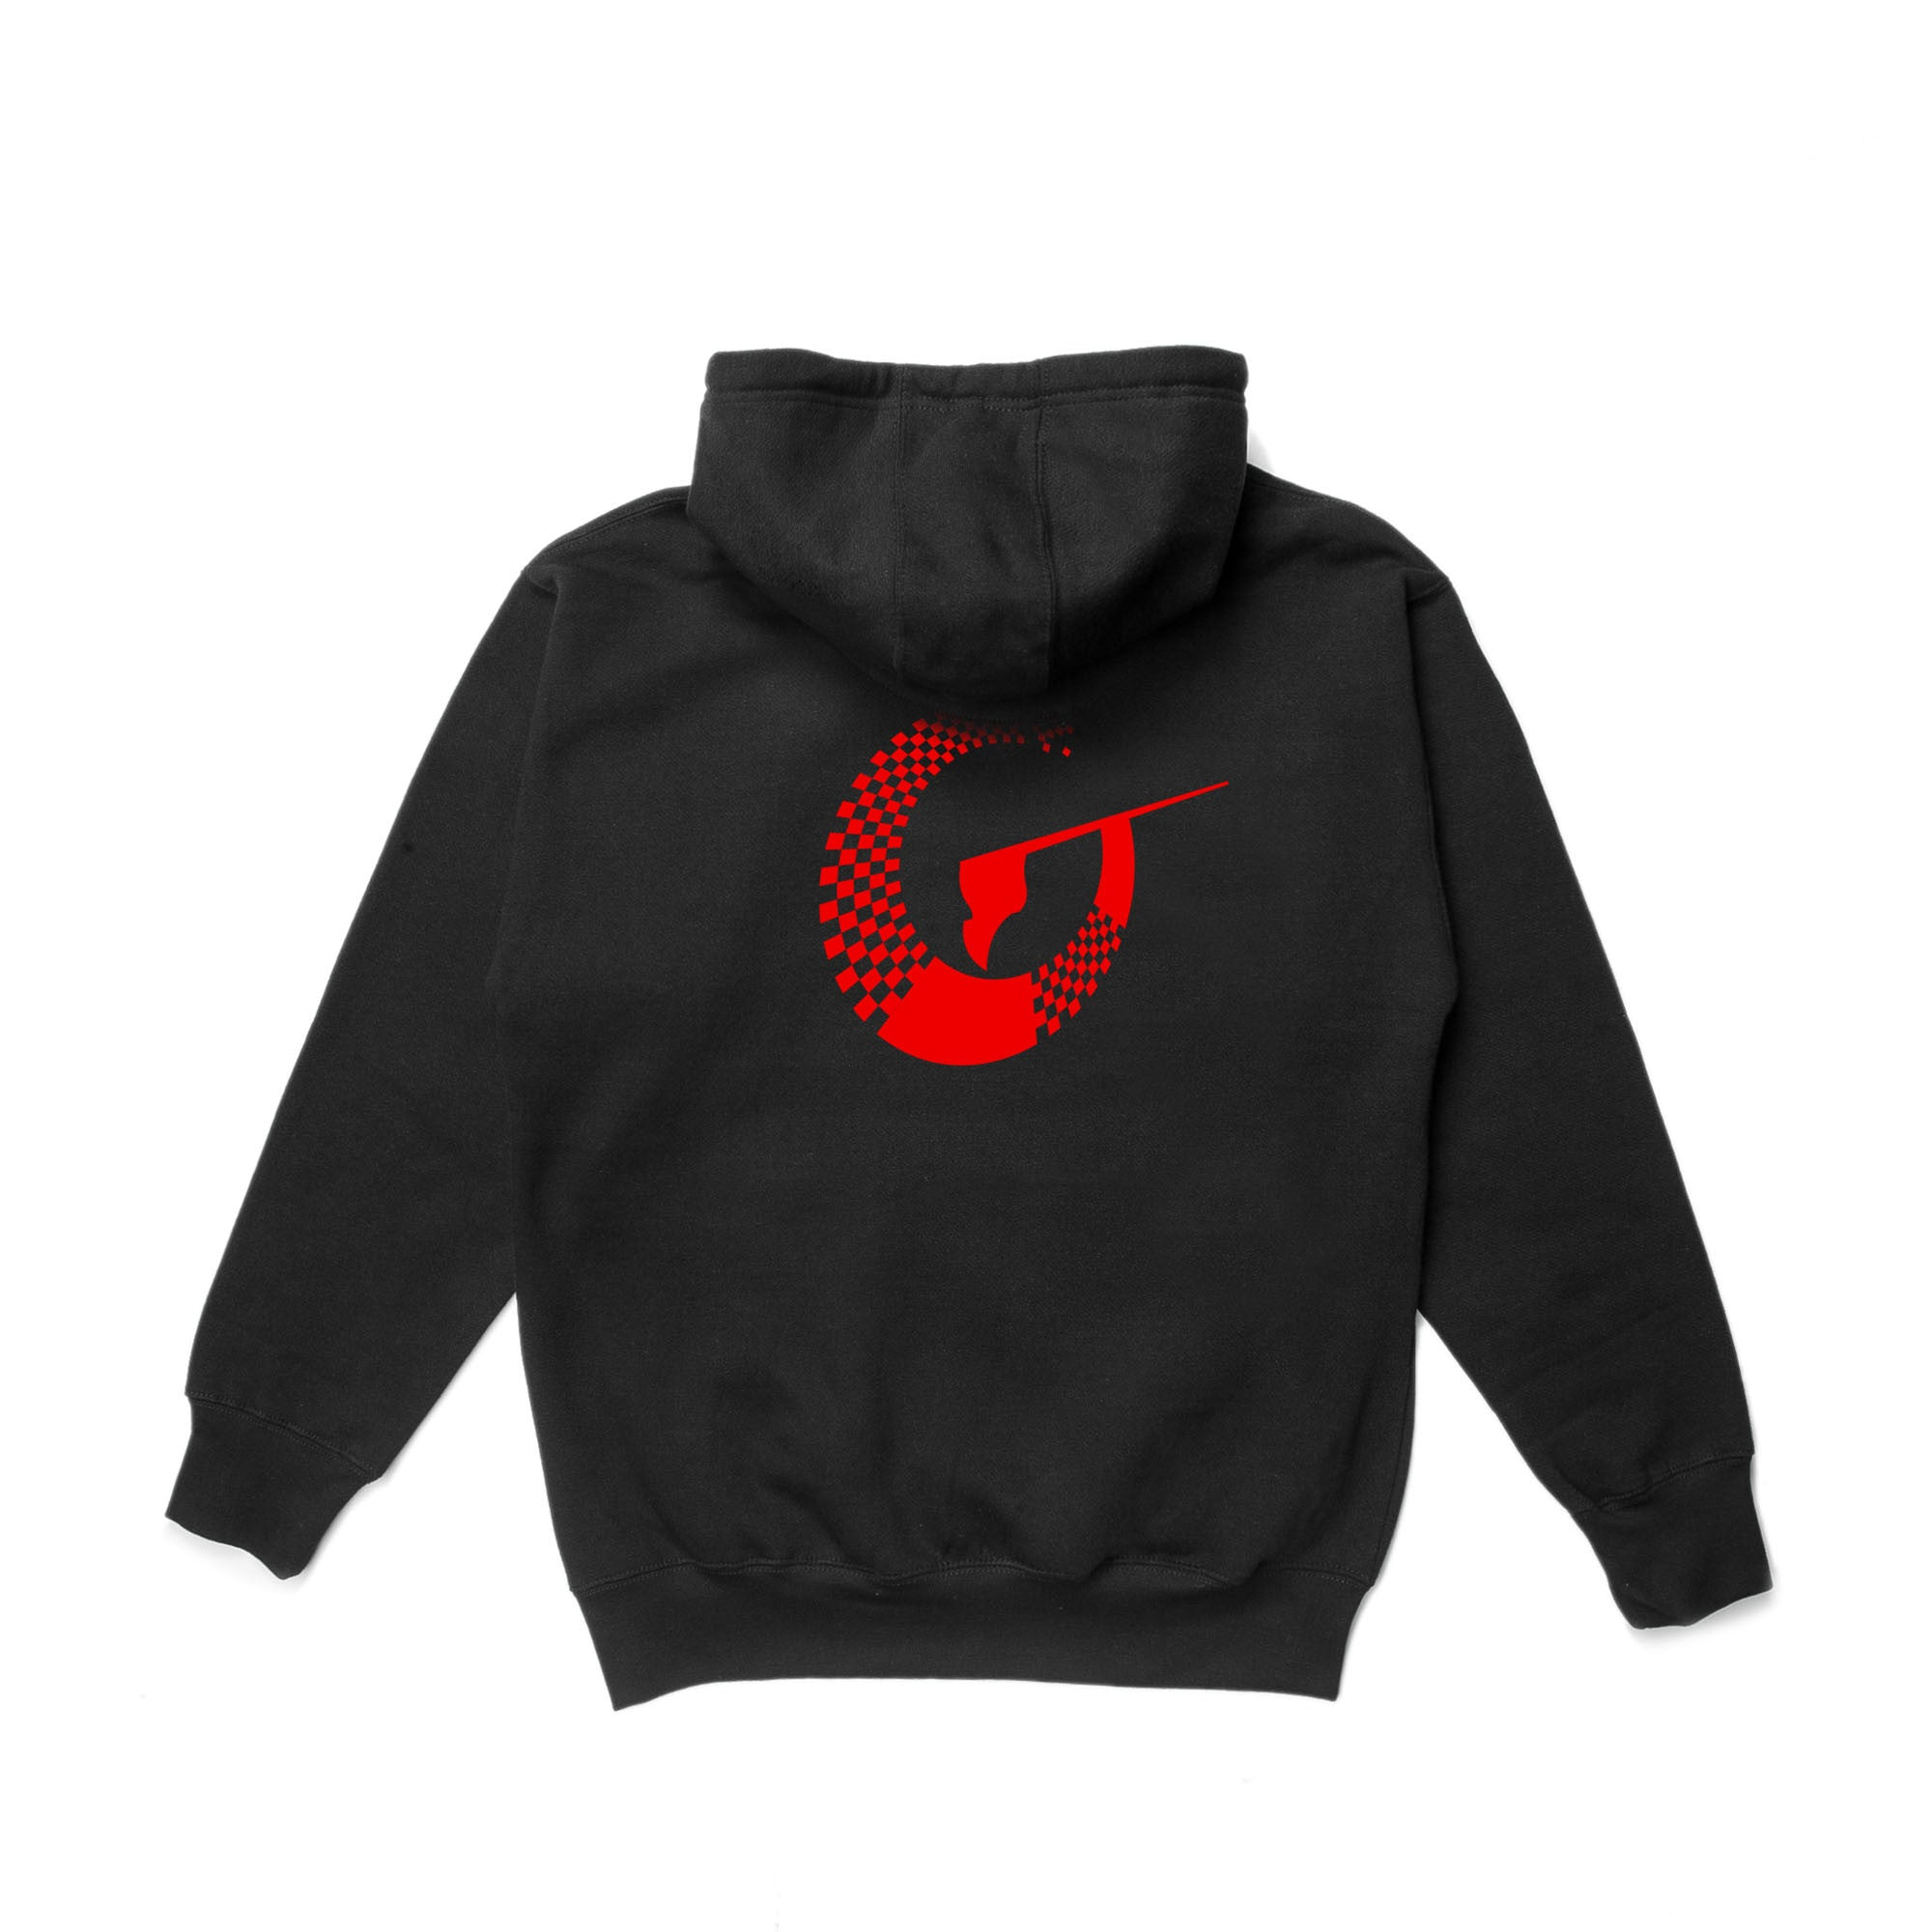 Inspire (Pullover) - Black/Red